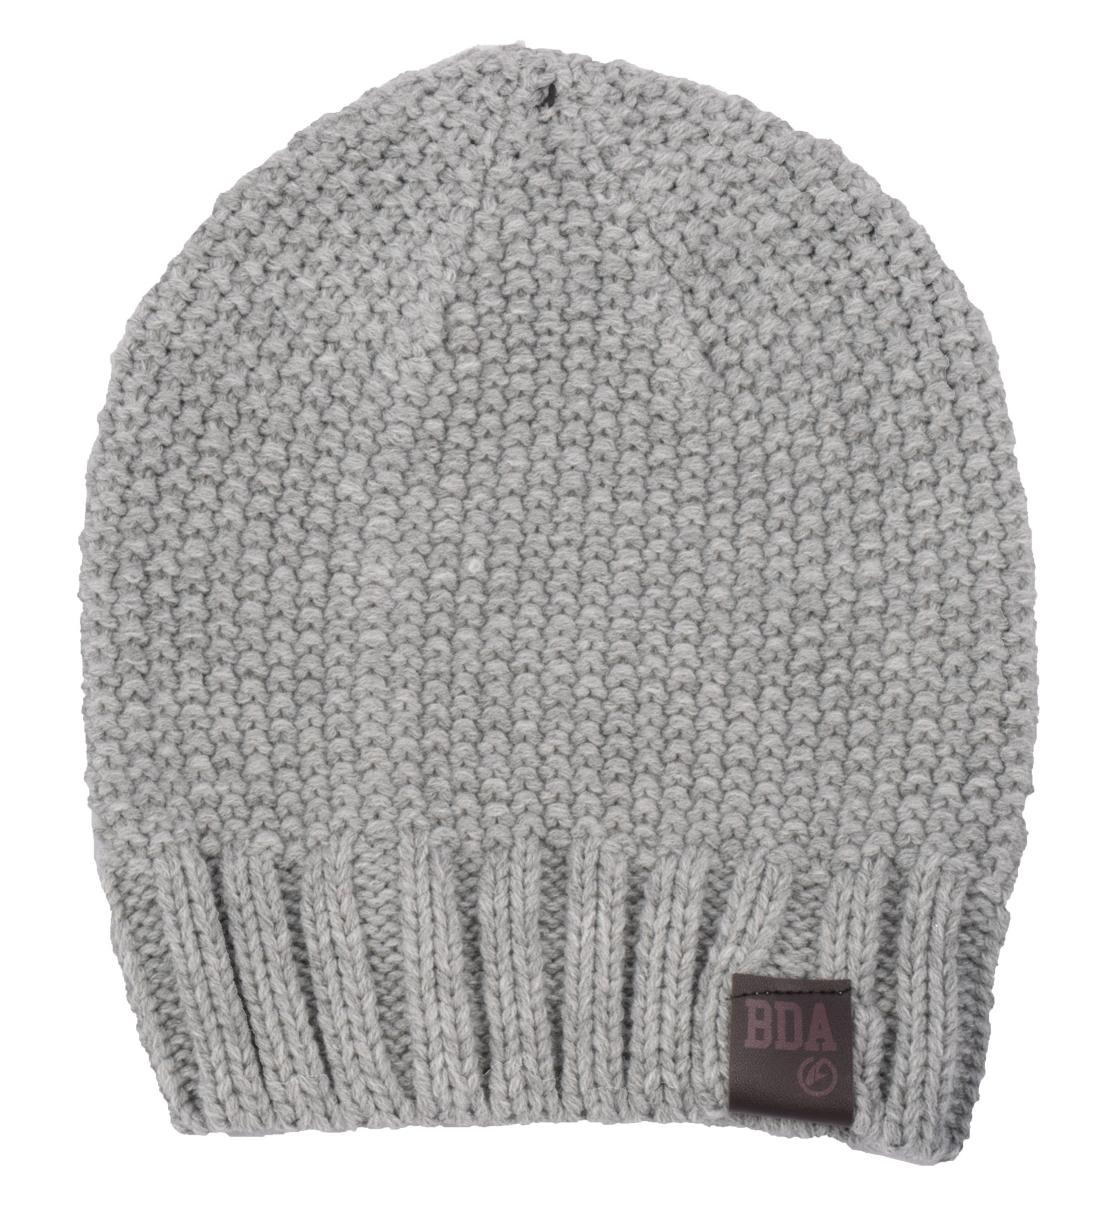 Body Action Σκούφος Cable Knitted Beanie Hat 095706